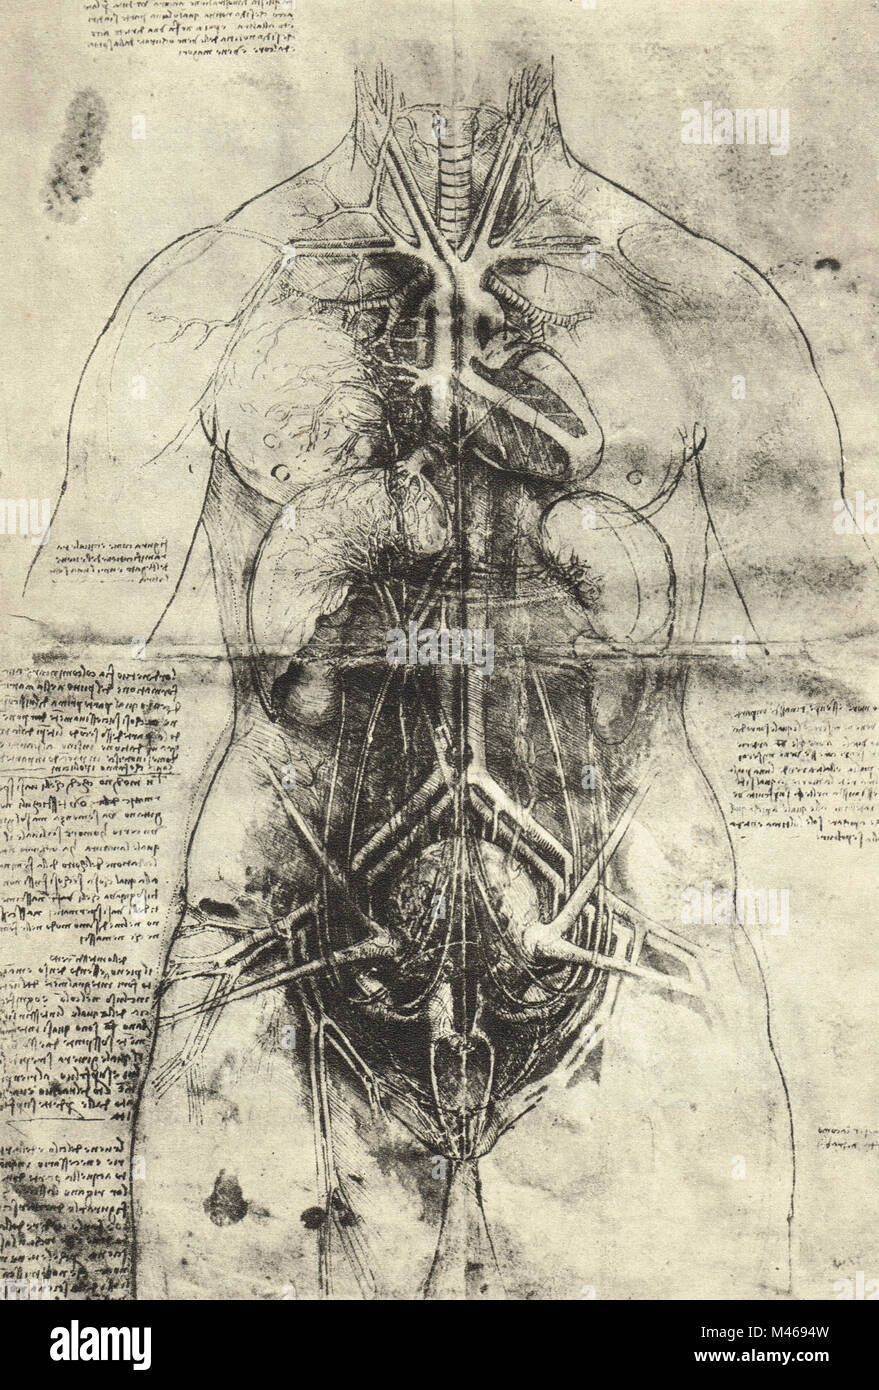 Dissection of the arterial system and principal organs of a woman.   Anatomical drawing by Leonardo Da Vinci, circa - Stock Image